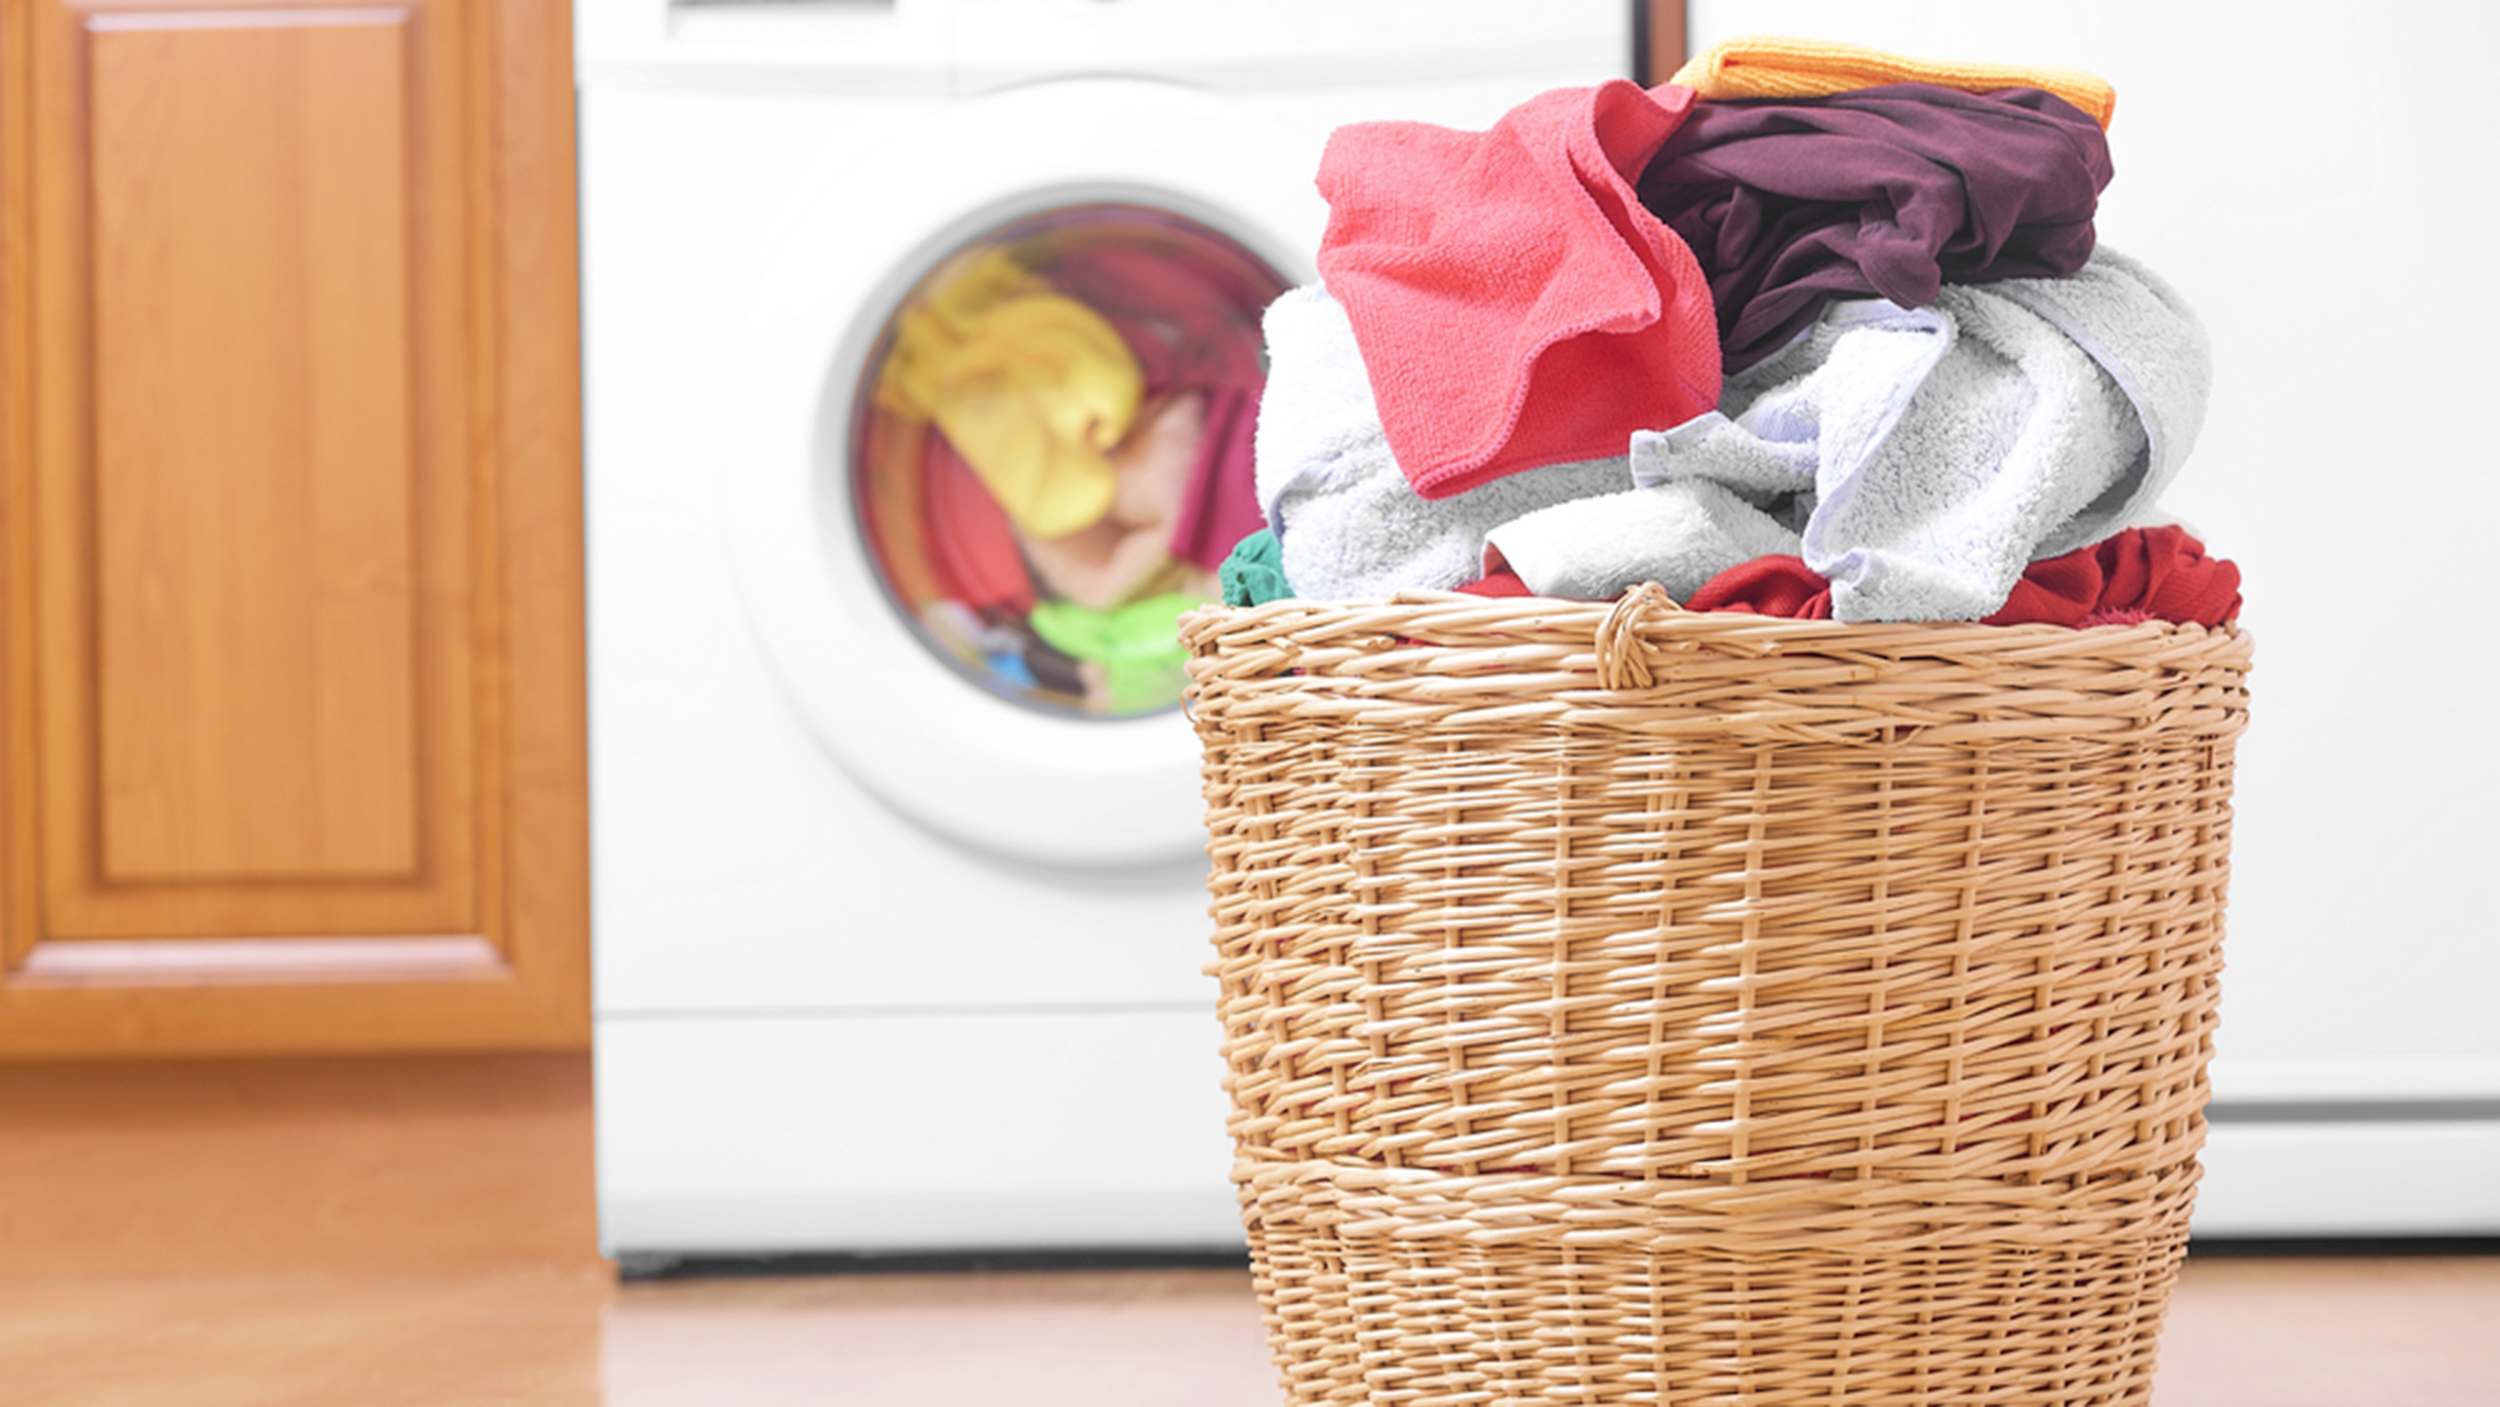 laundry-stock-today-160808-tease_8816217b49c15bf3fc07bbcd6558c2db.jpg